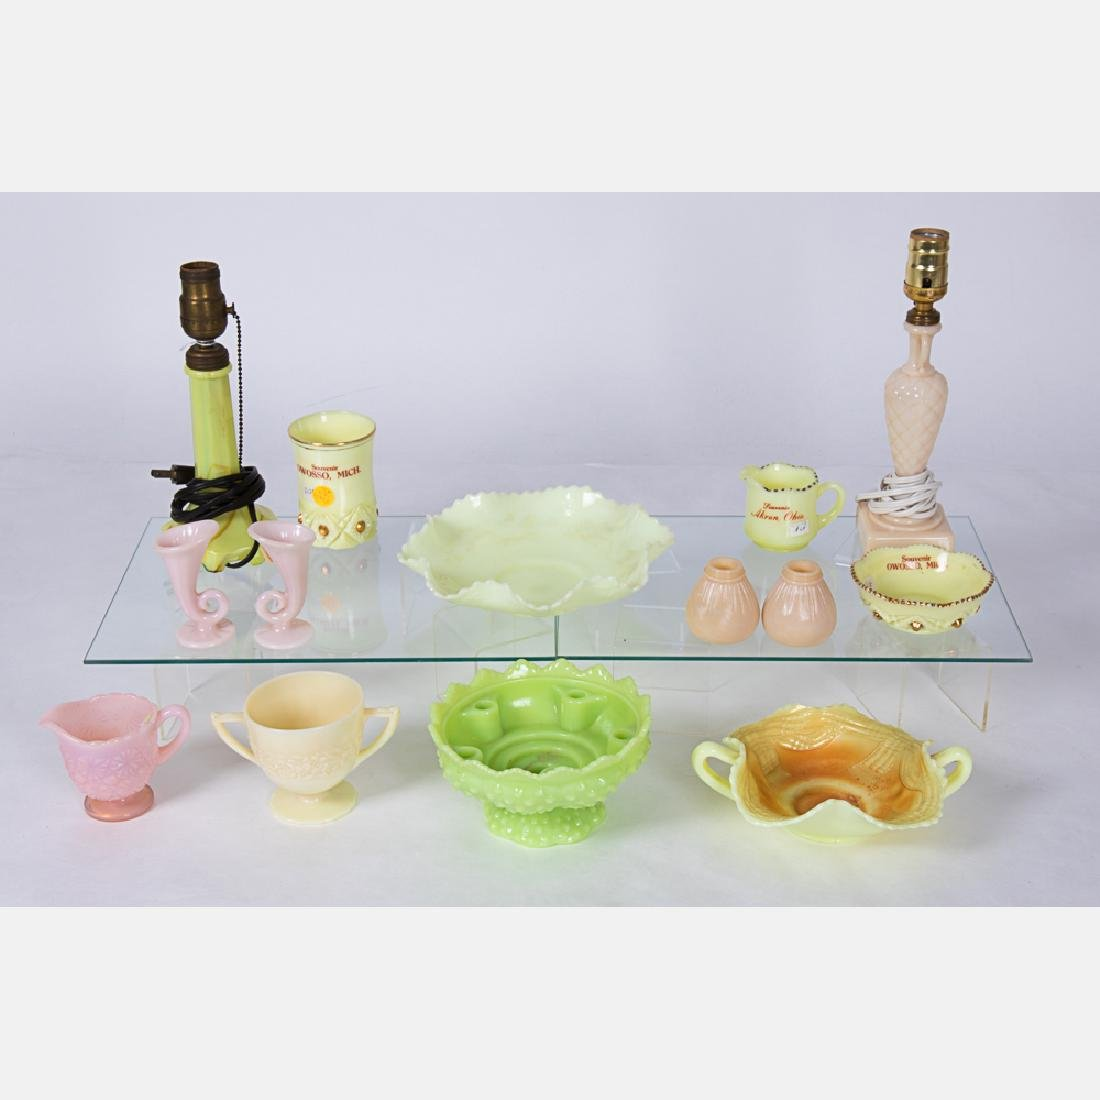 A Collection of Colored Pressed Glass Decorative Items